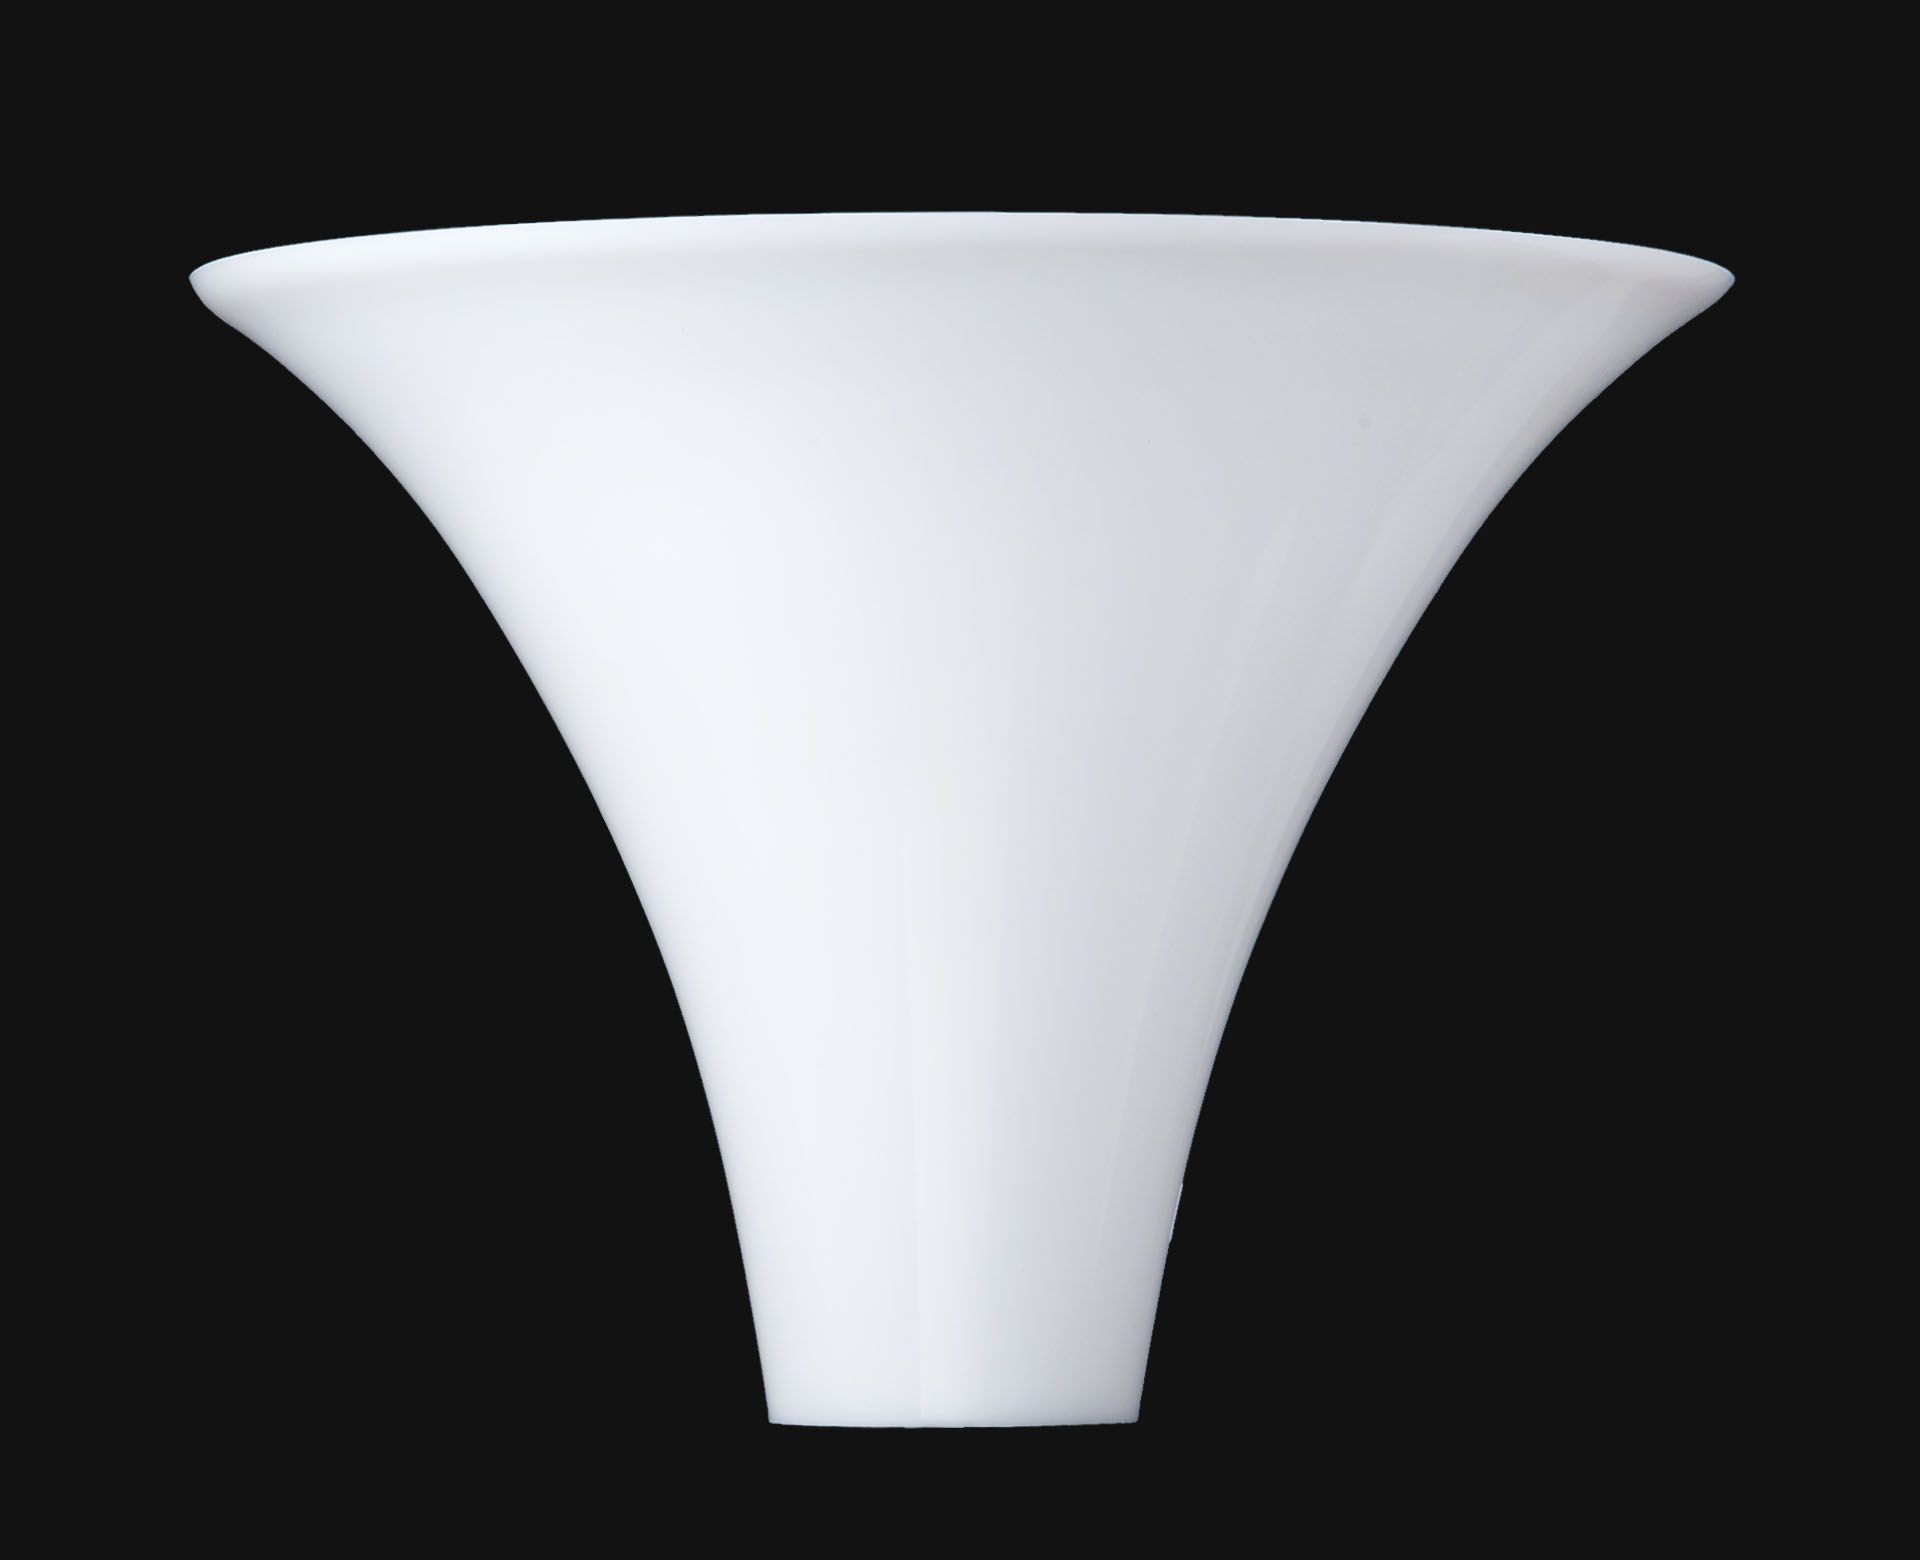 10 opal glass torchiere lamp shade 09087 bp lamp supply 09087 10 opal glass torchiere lamp shade aloadofball Image collections